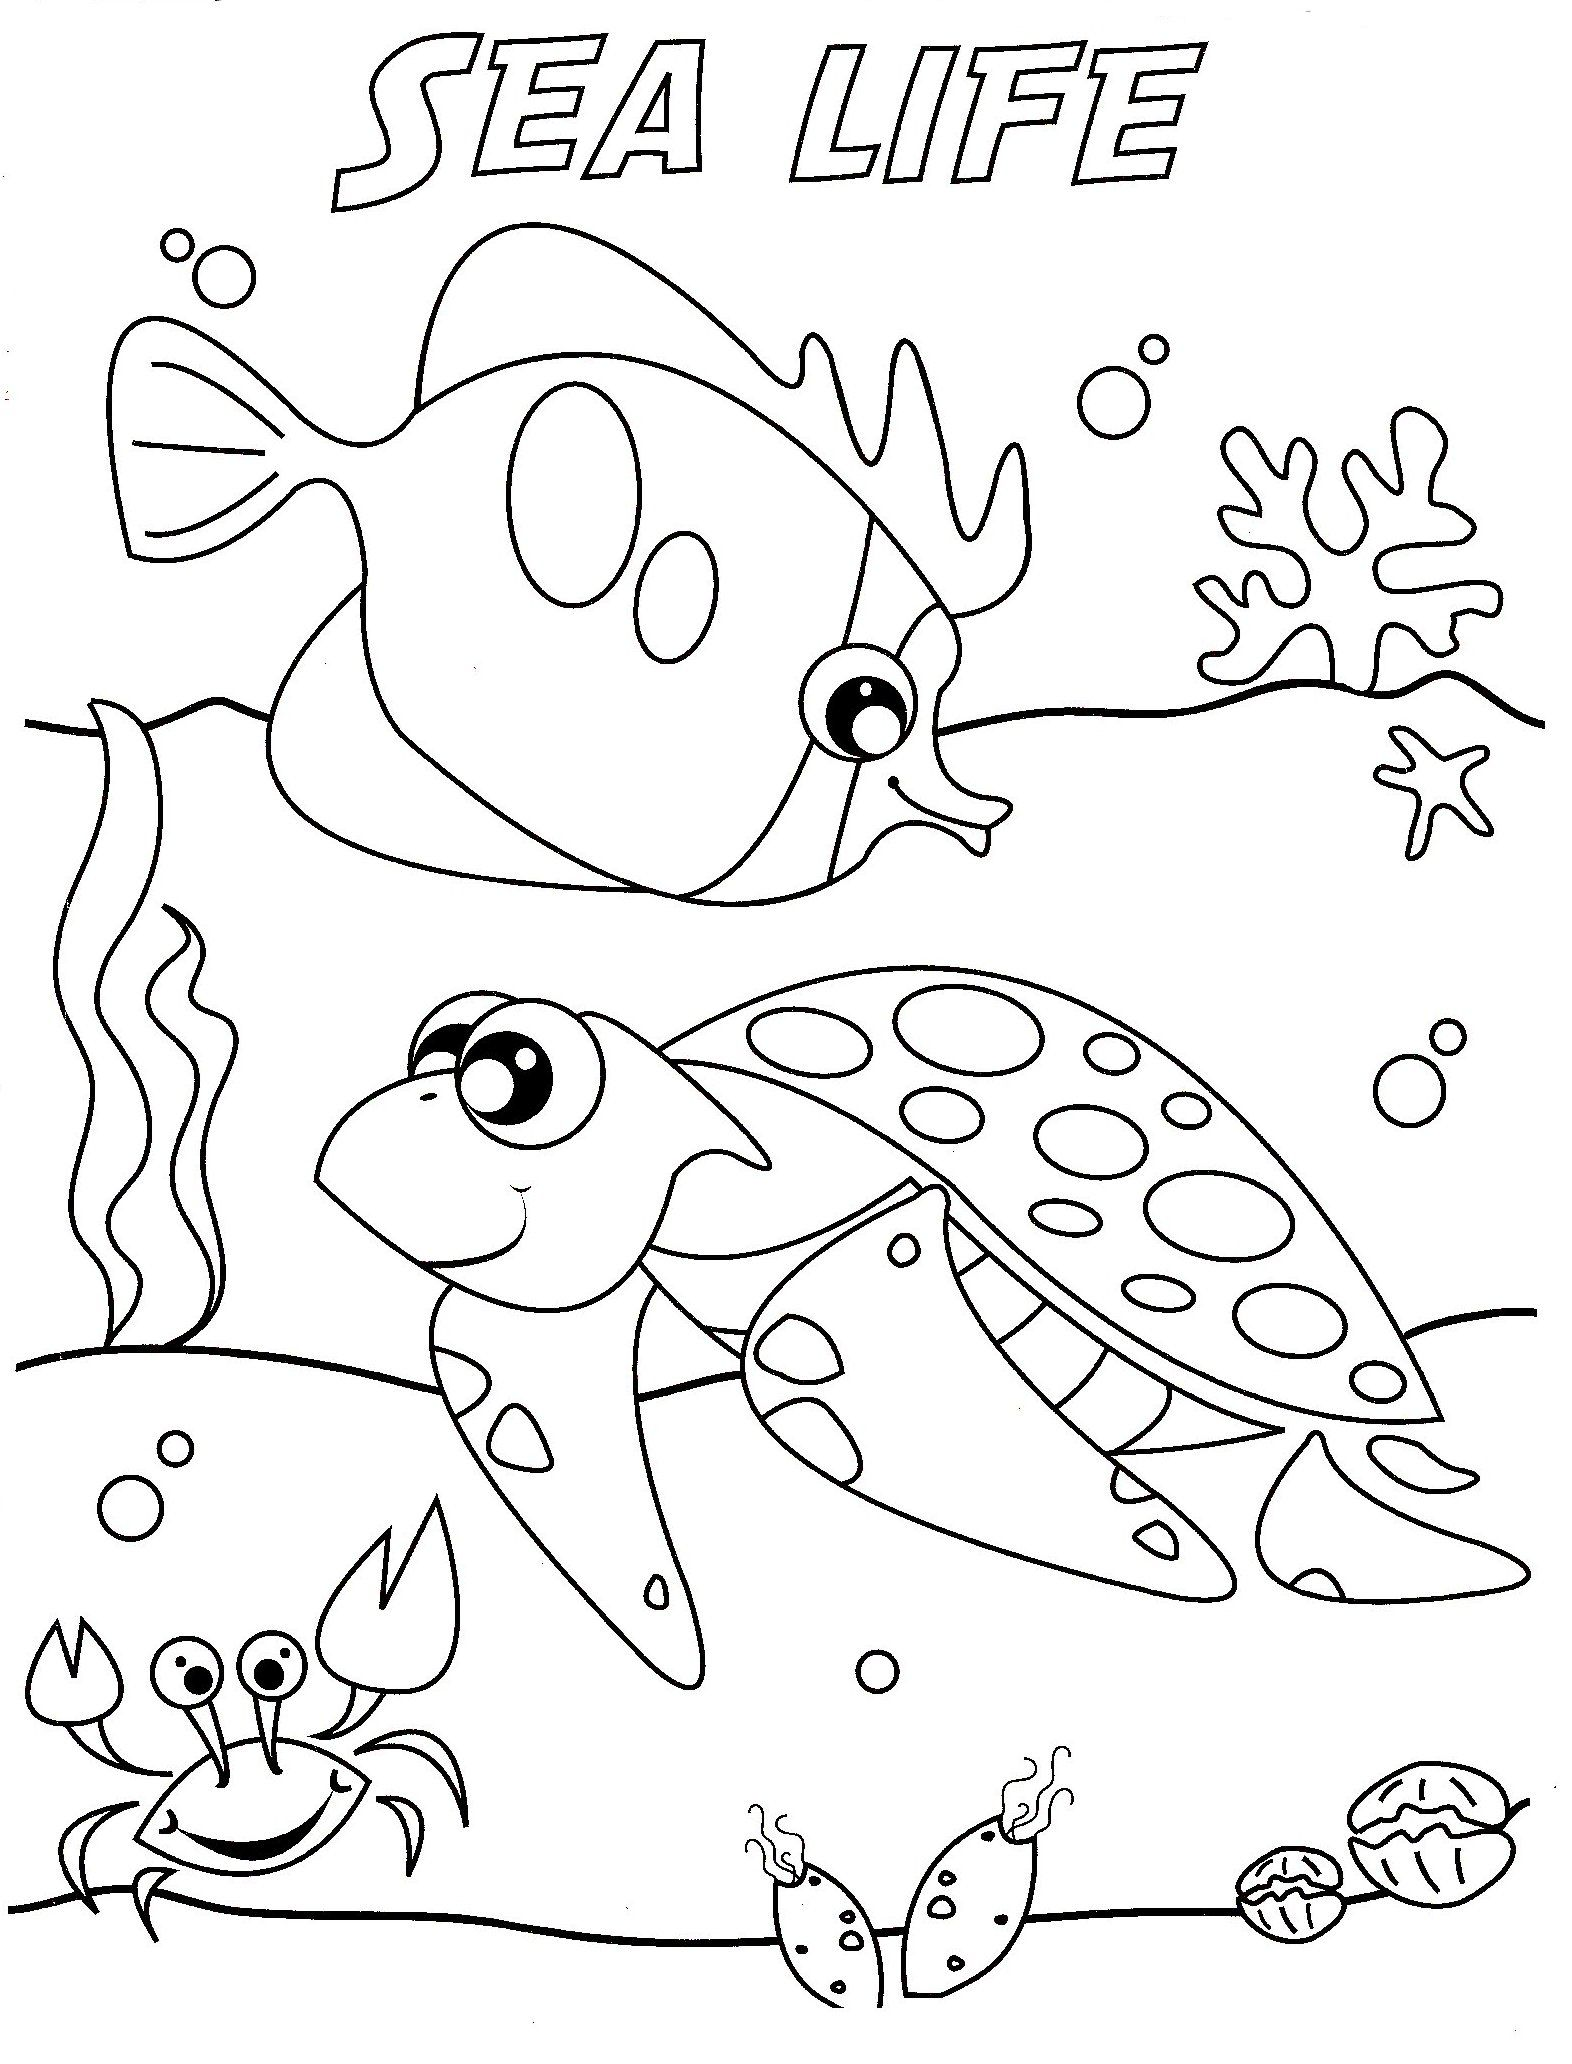 Ocean Life Coloring Pages To Download And Print For Free Ocean